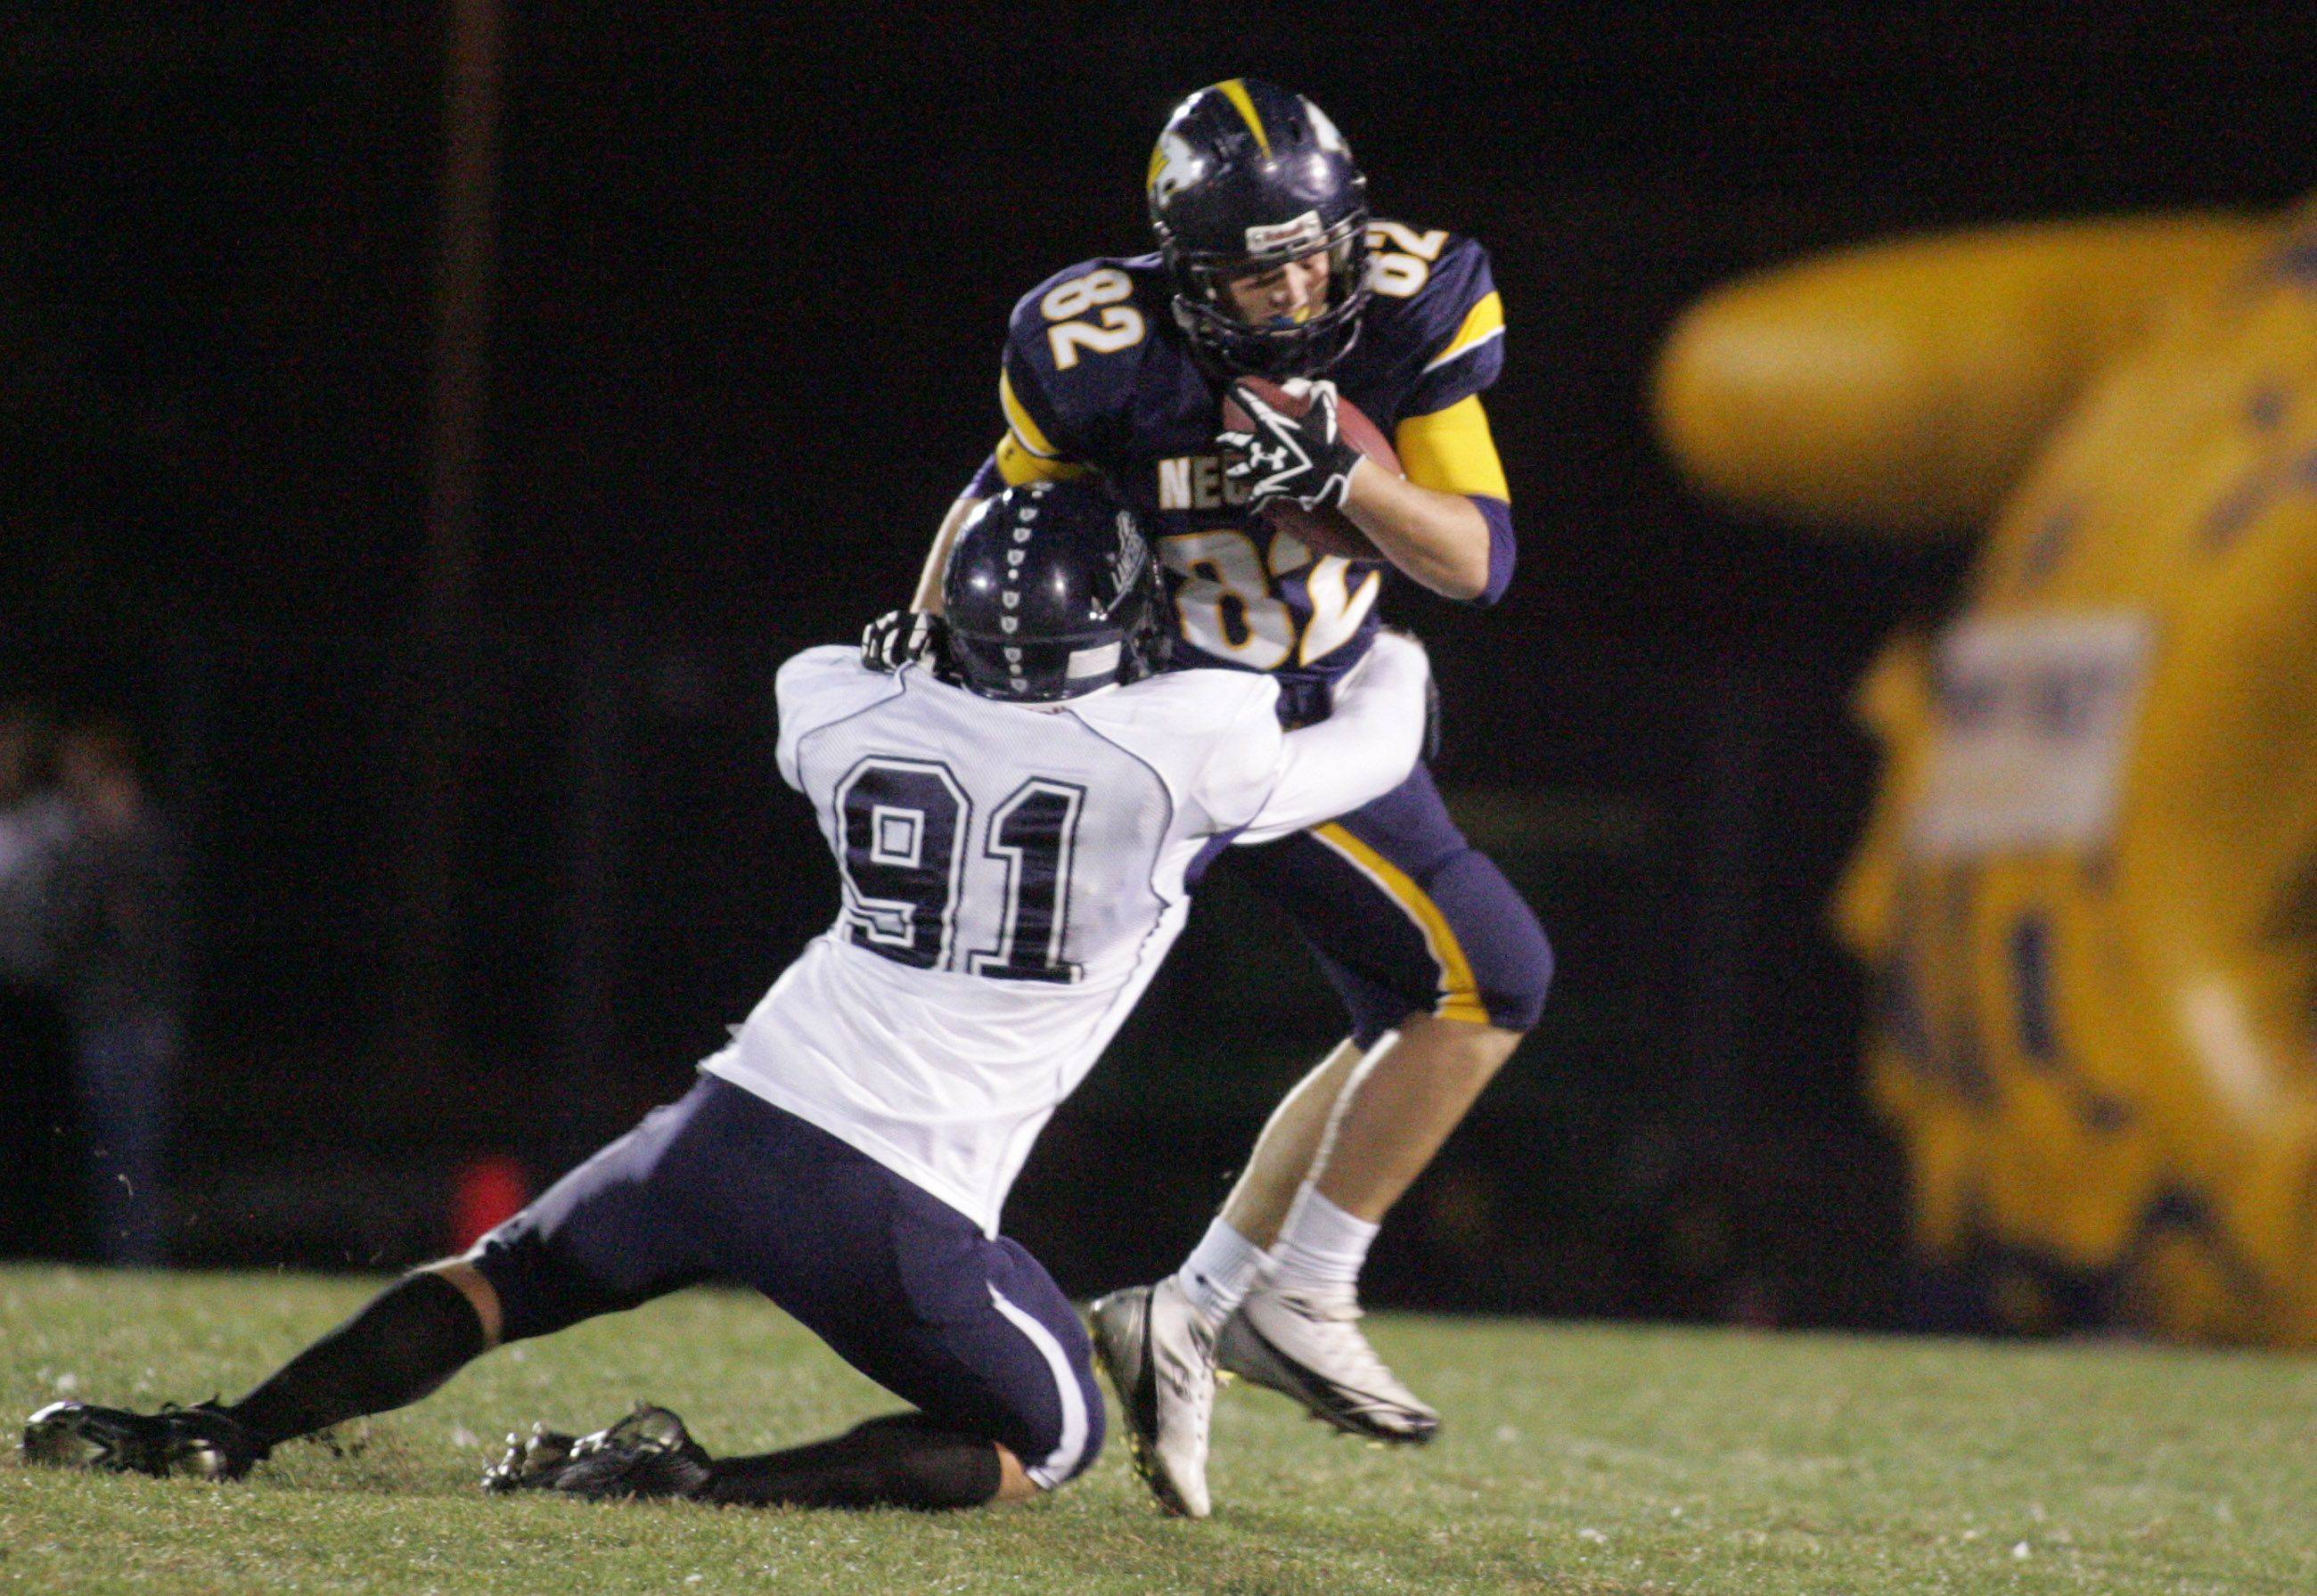 WEEK 9- Neuqua Valley's Jeff Evak gets tackled shortly after receiving a punt.